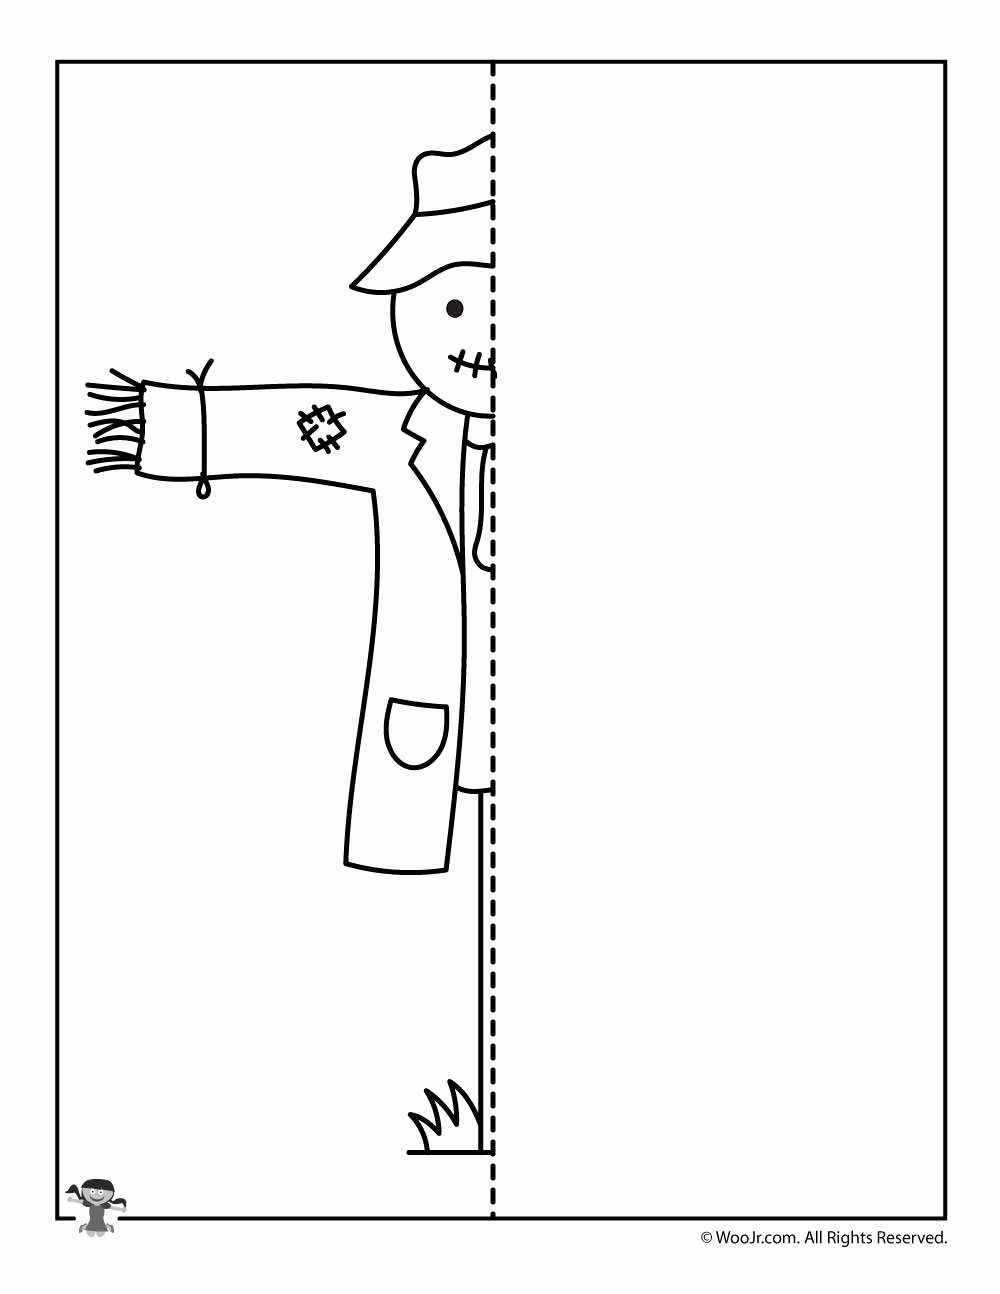 Scarecrow Worksheets for Preschoolers Lovely Fall Scarecrow Finish the Drawing Worksheet